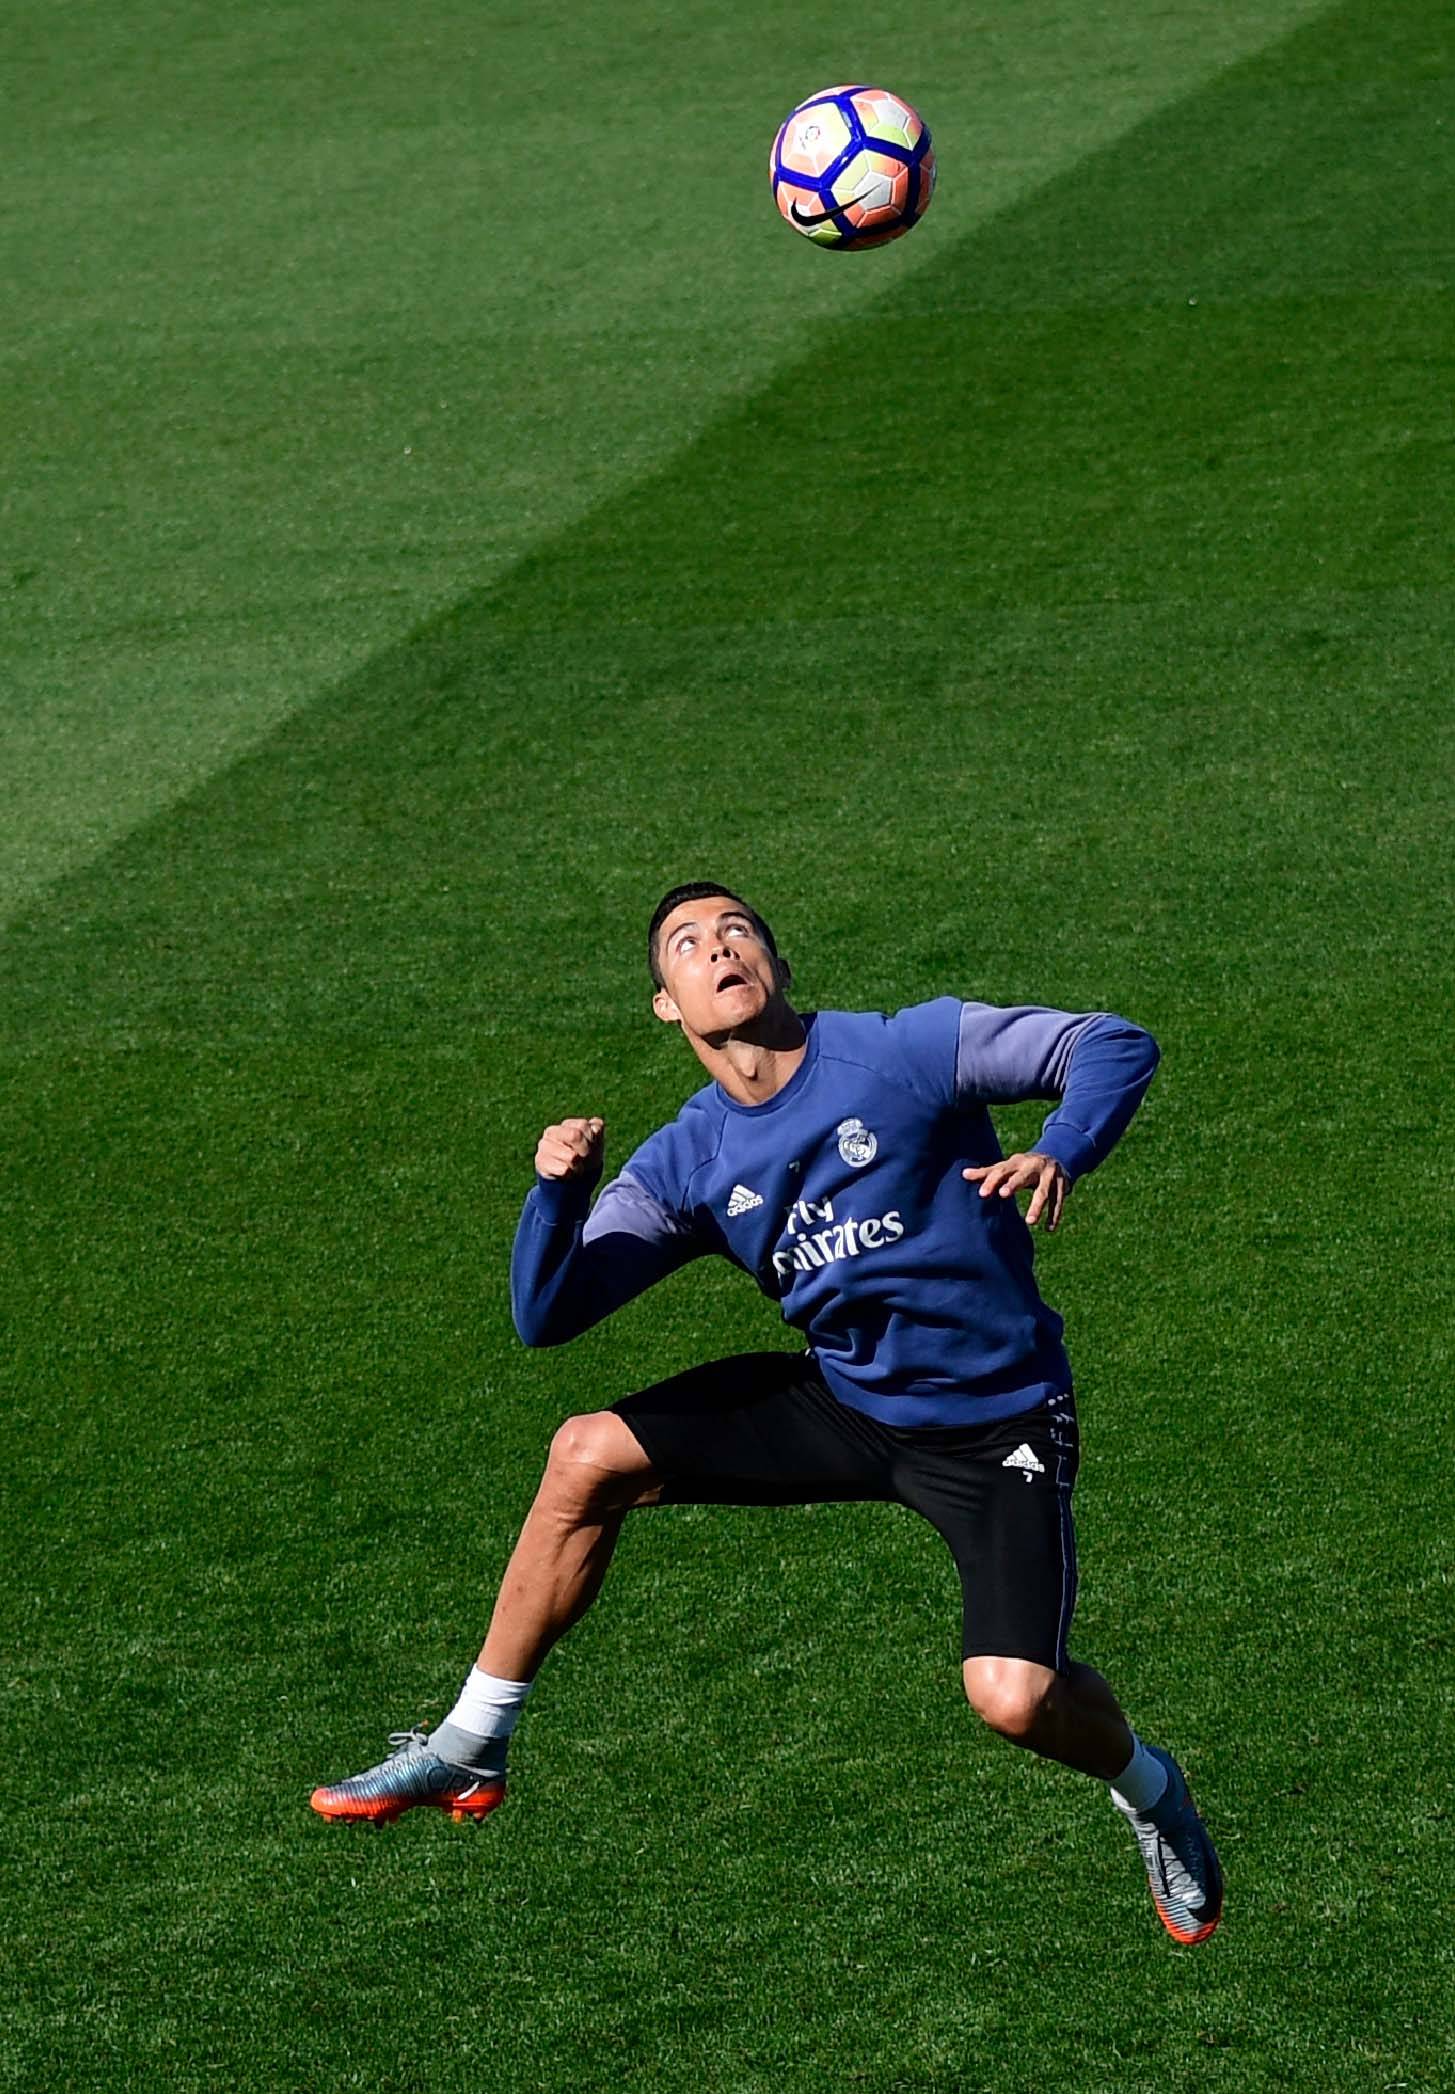 Ronaldo Mercurial : ronaldo, mercurial, Cristiano, Ronaldo, Trains, Signature, Chapter, Mercurial, SoccerBible